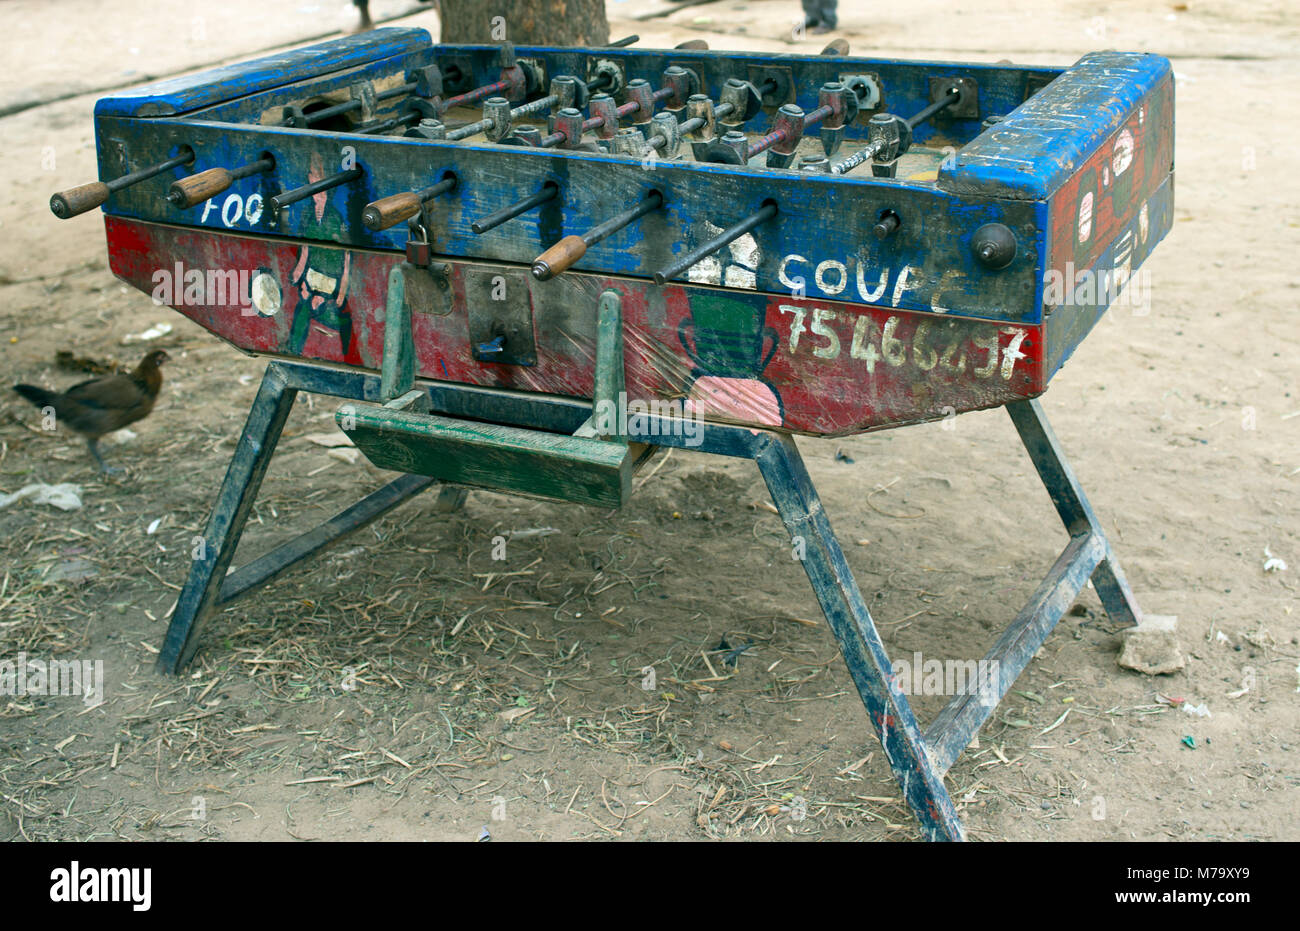 A dilapidated foosball table in a small village still provides entertainment. Mopti Region, Mali, West Africa. - Stock Image